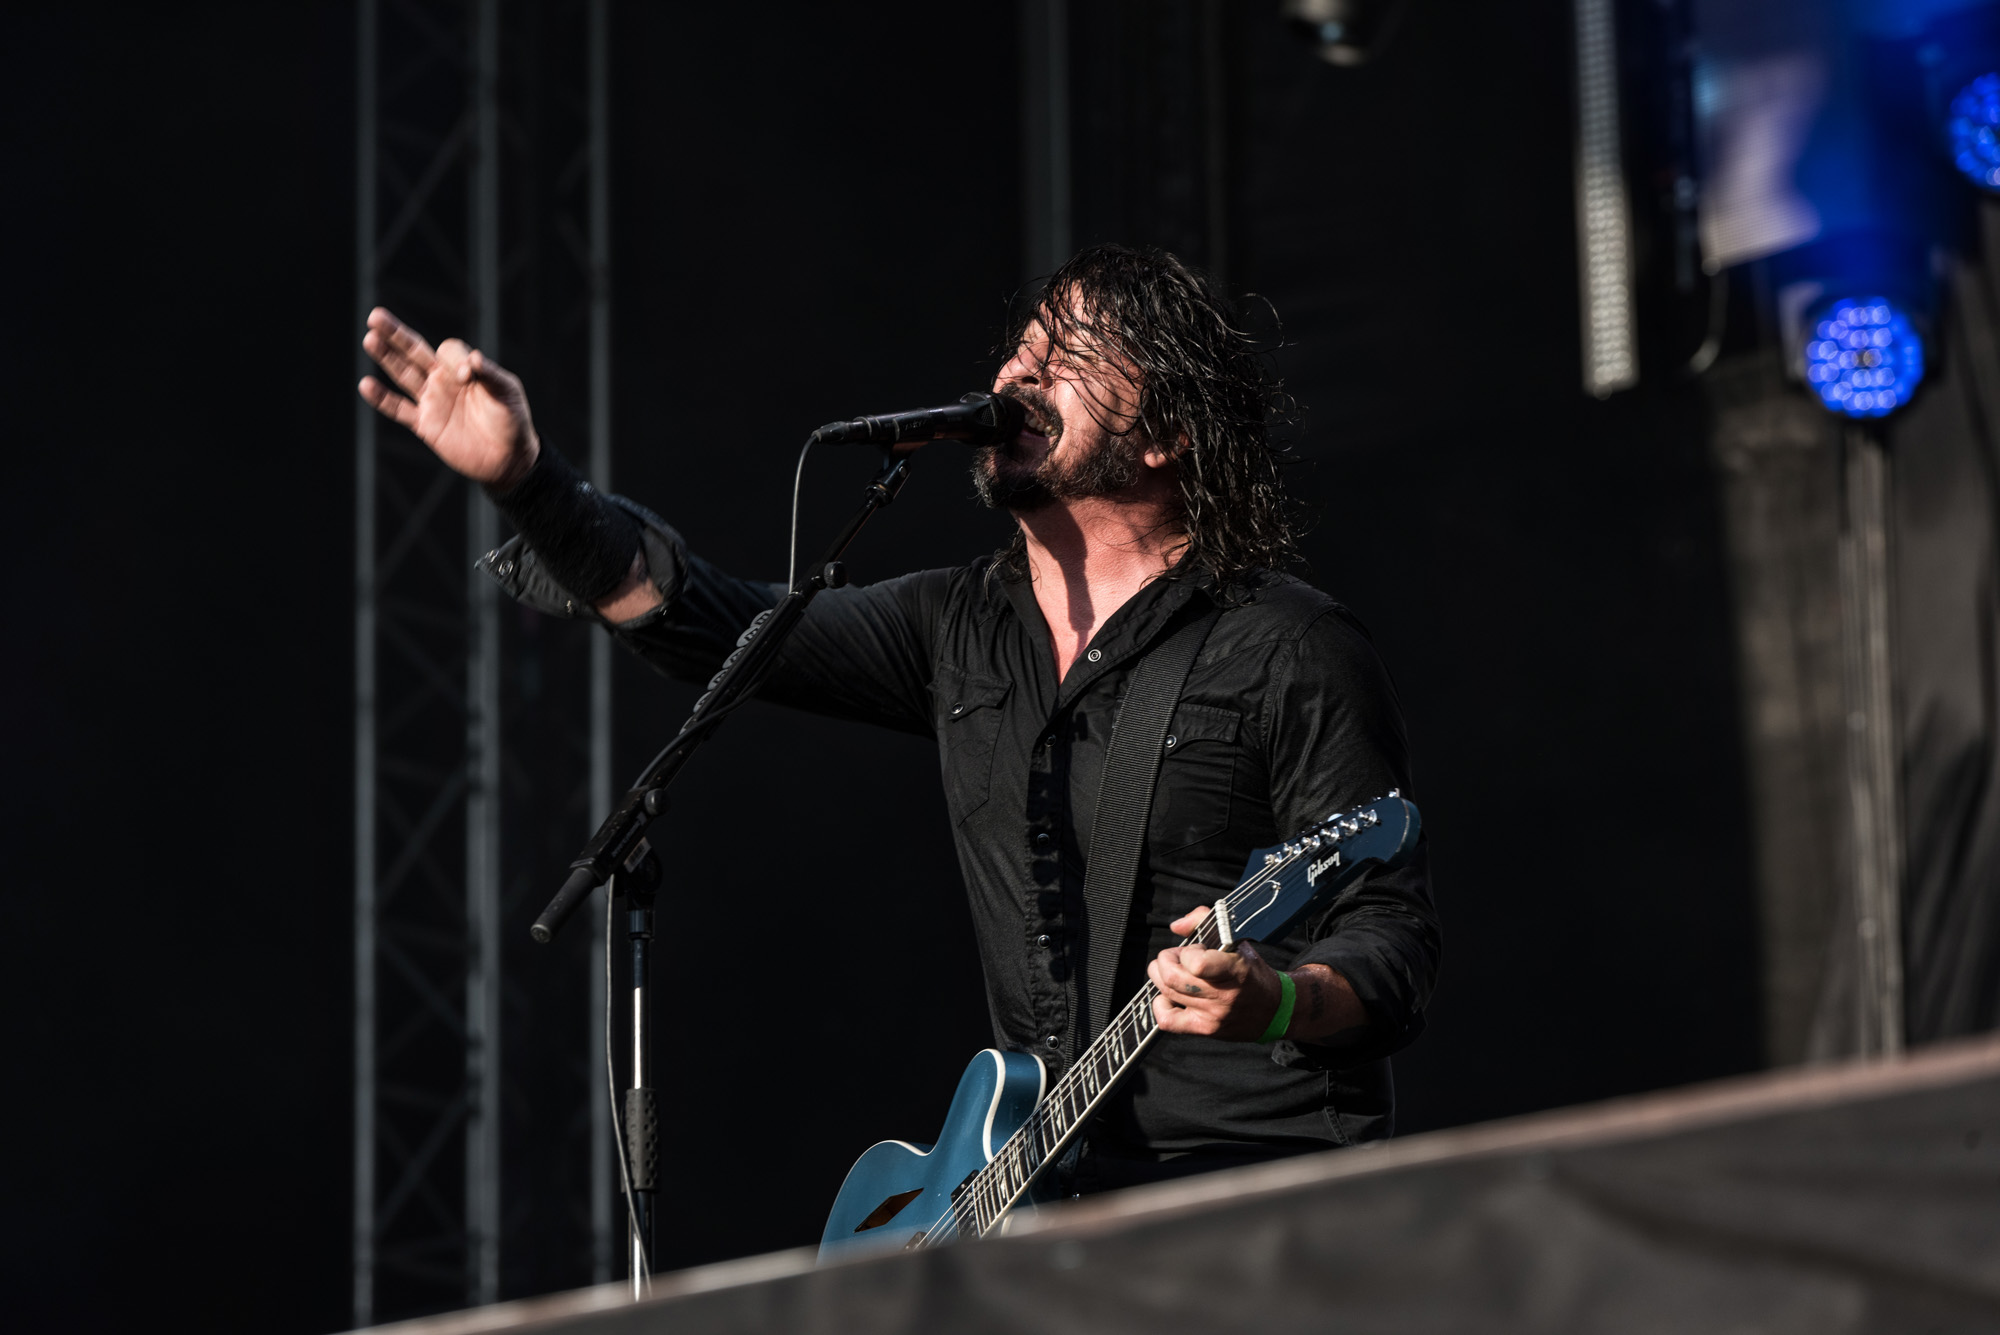 20062019_Foo_Fighters__Koengen_Bergen__Oeyvind_Toft _022